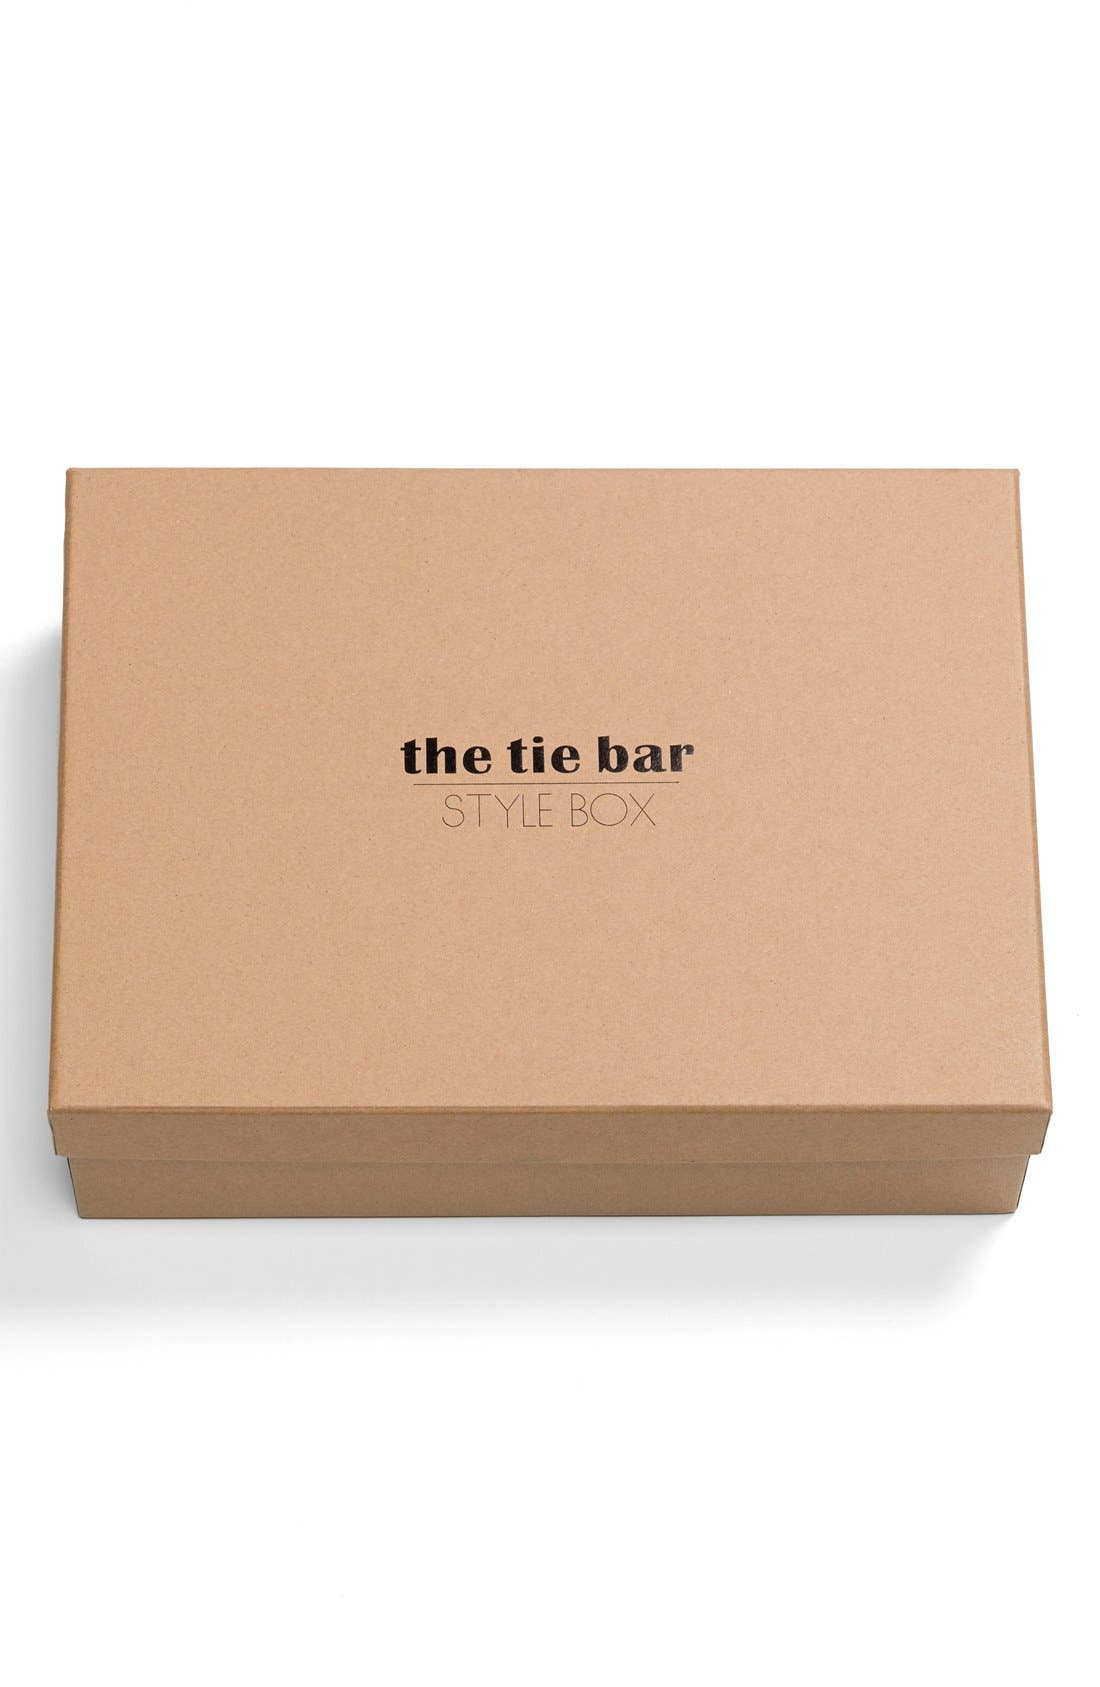 THE TIE BAR, Large Style Box, Alternate thumbnail 3, color, 020